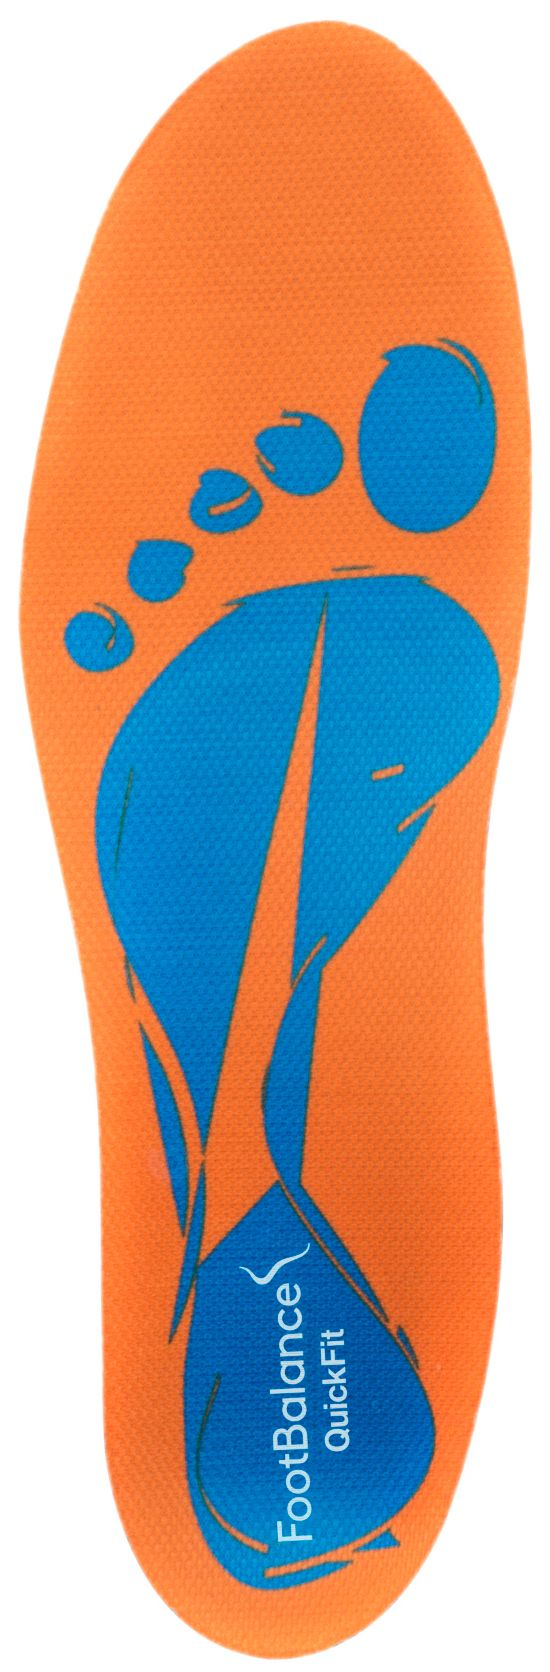 Narrow Pre-Mold.Insole Low Arch BLUE